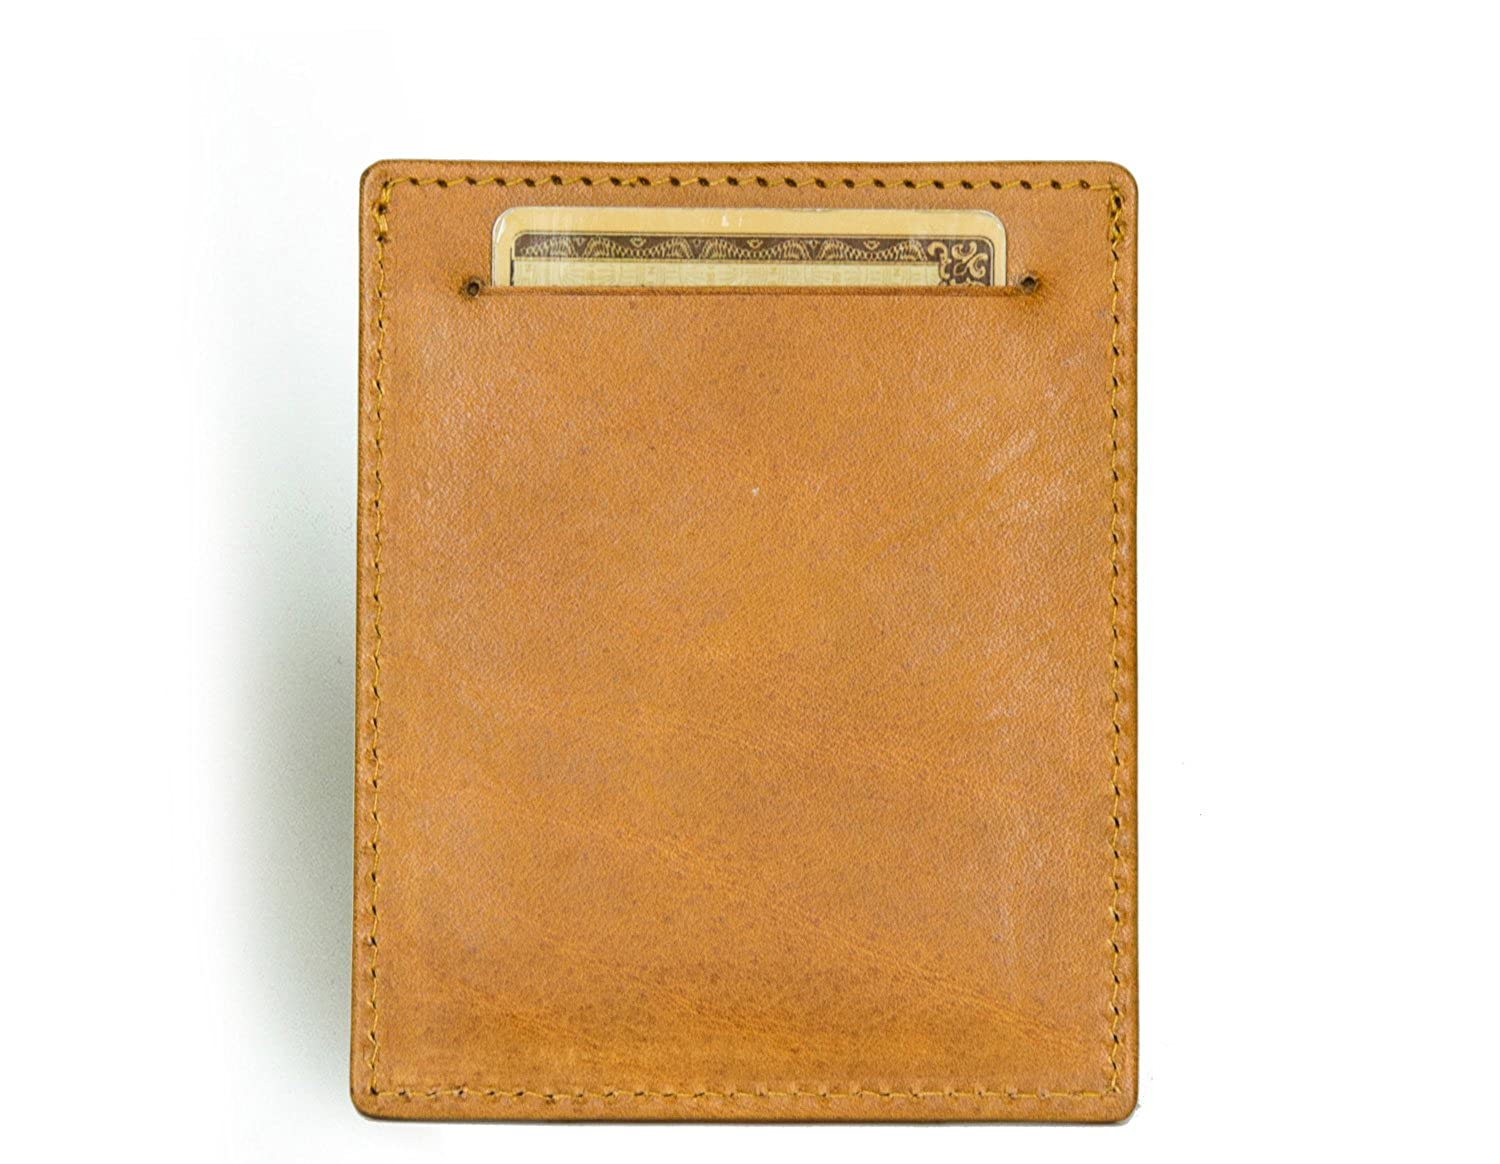 Front Pocket Wallet in Tuscany leather RFID Minimalist Card Holder from Axess